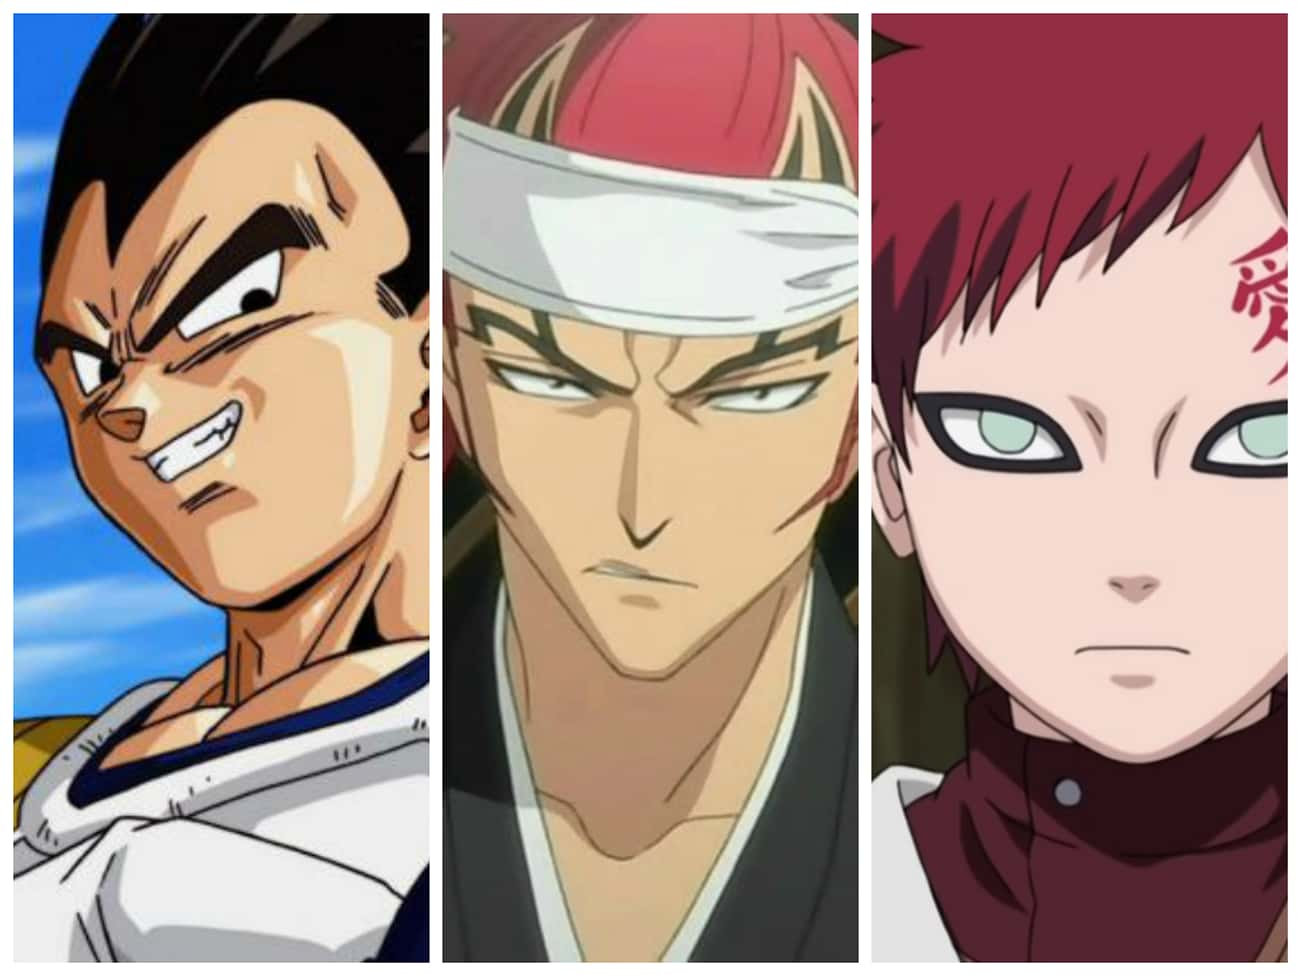 The Bad Guys That Turn Good is listed (or ranked) 4 on the list 18 Cliches Only Anime Fans Will Understand